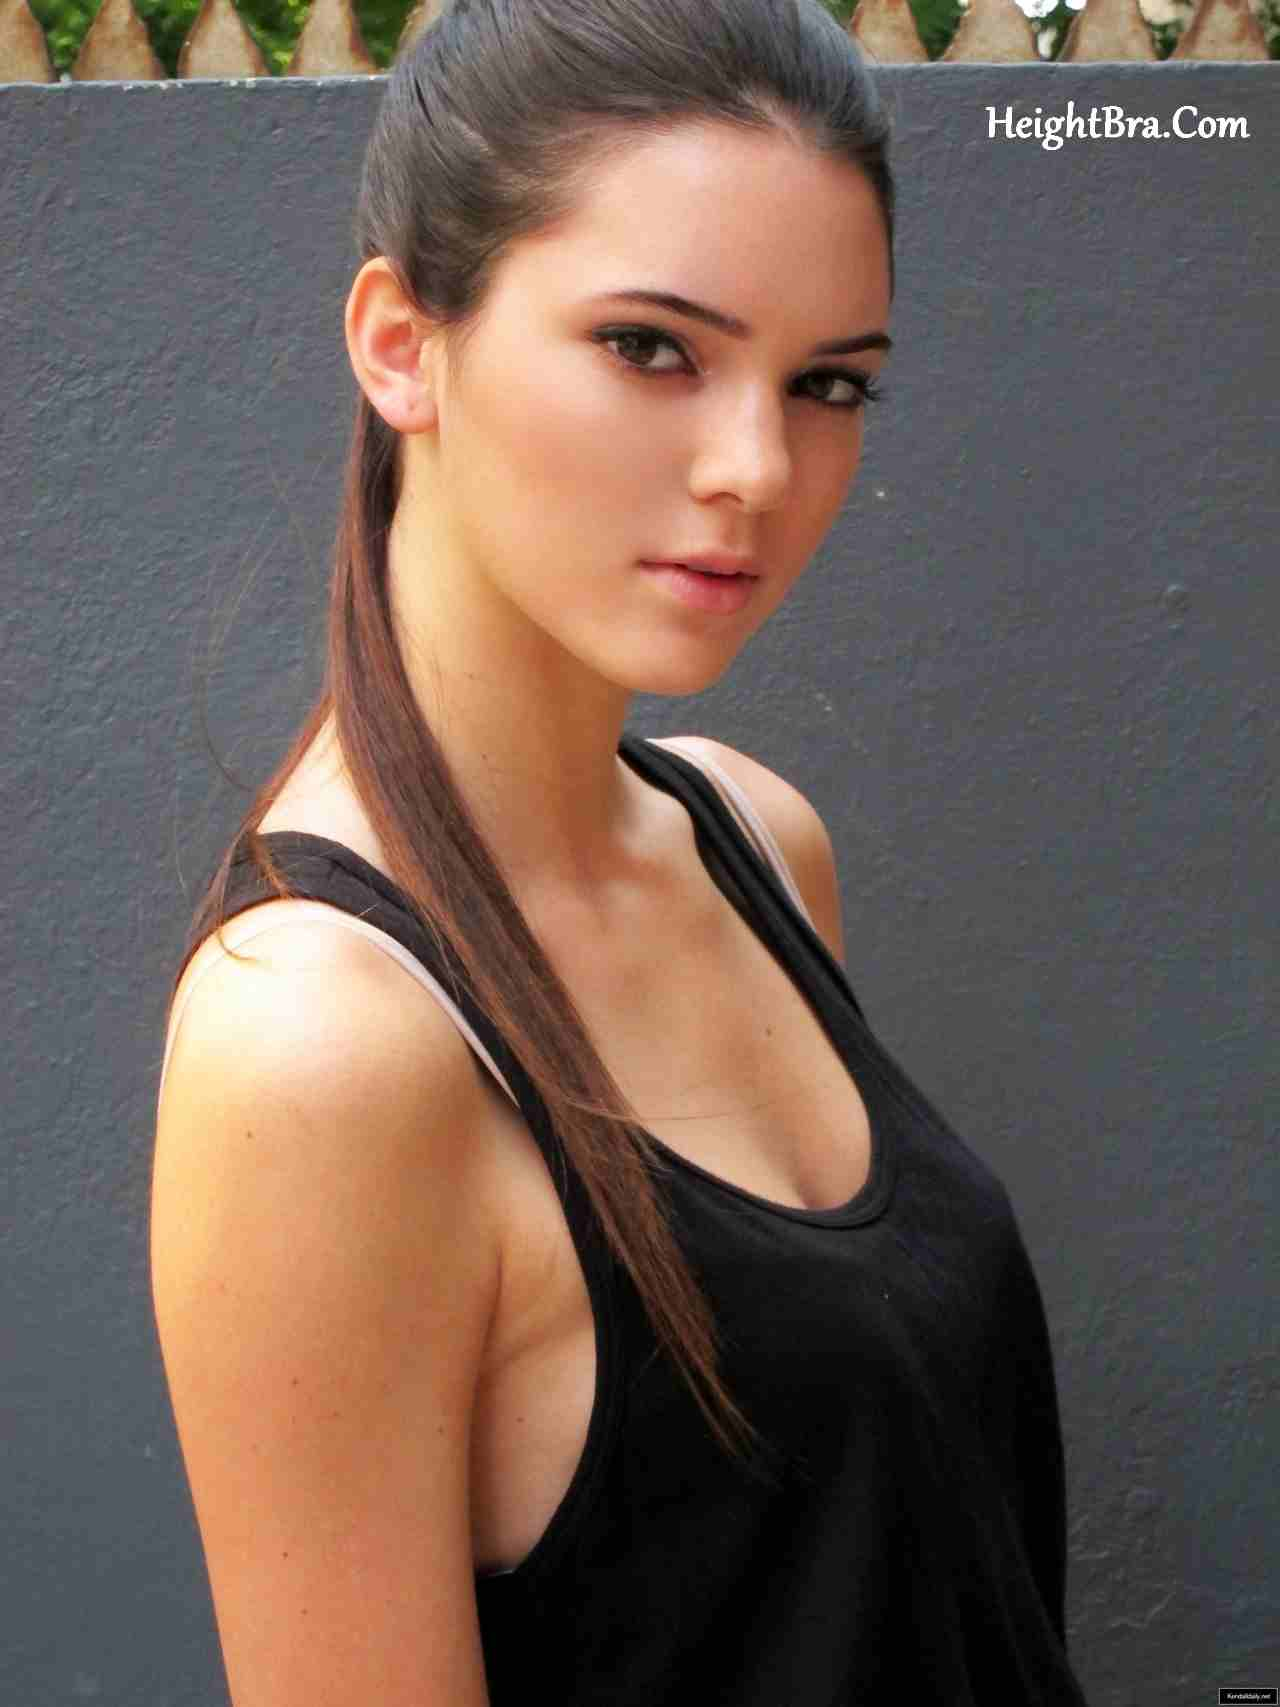 Model Height Of Kendall Jenner Height Weight Bra Bio Figure Size